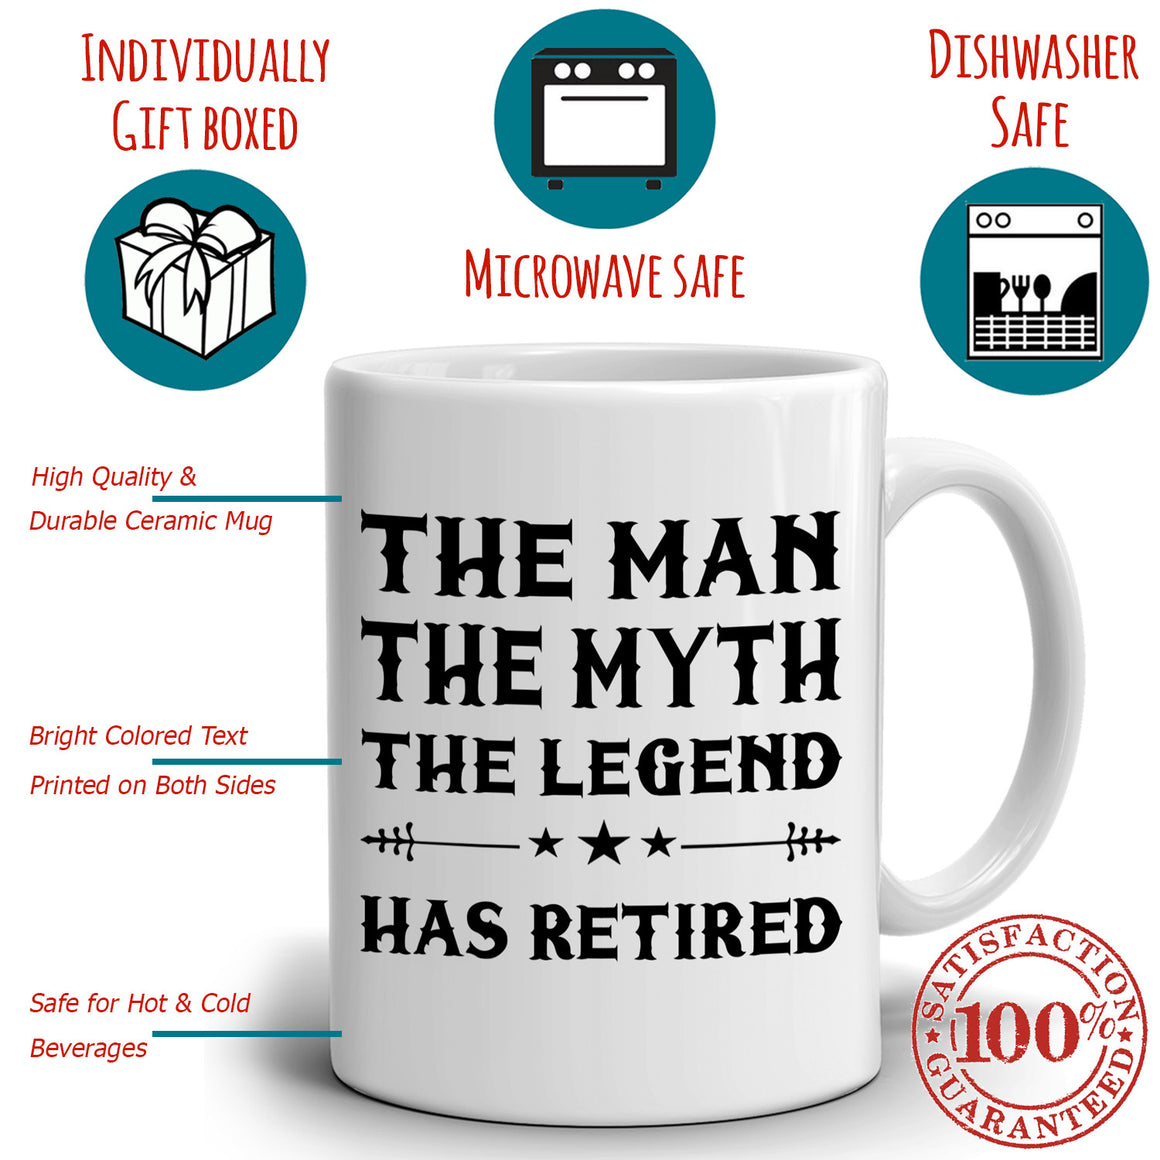 The Man The Myth The Legend Has Retired Coffee Mug, Perfect for Retirement Party, Printed on Both Sides!